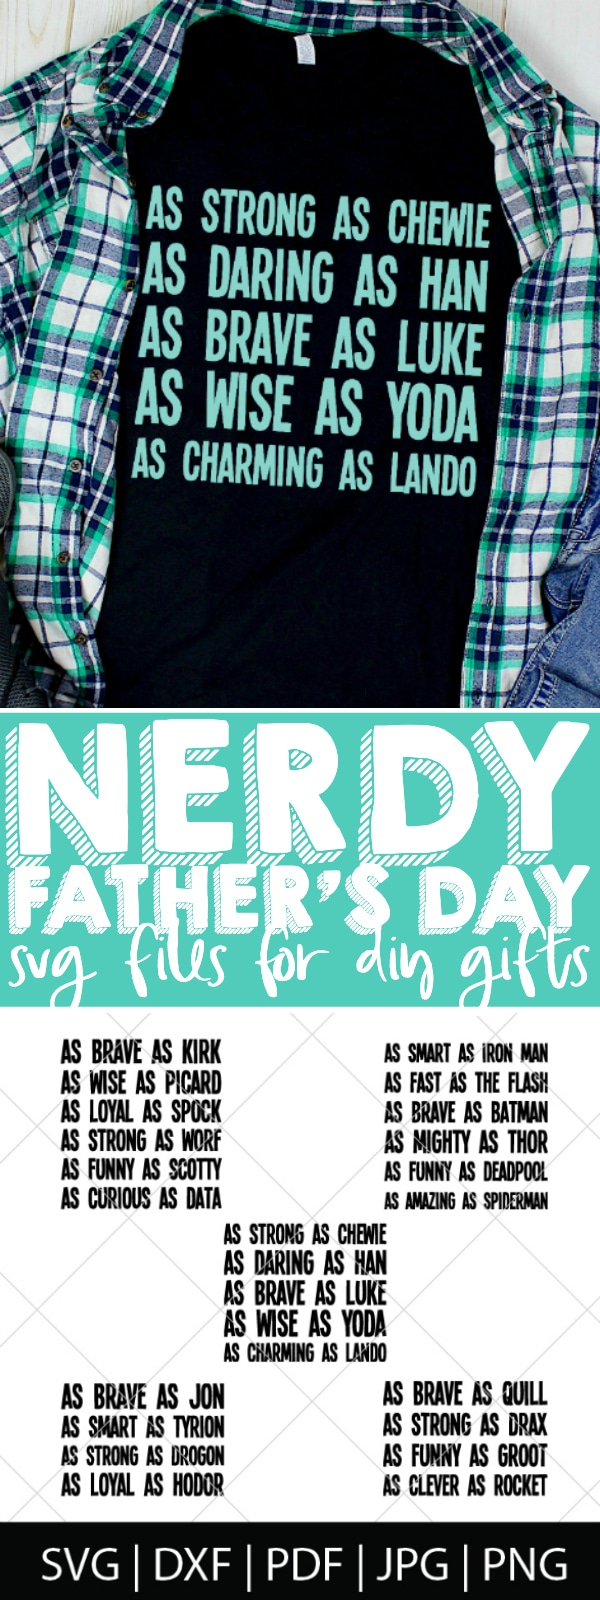 Free Free svg dad tool word art design. Nerdy Father S Day Svg Bundle The Love Nerds SVG, PNG, EPS, DXF File